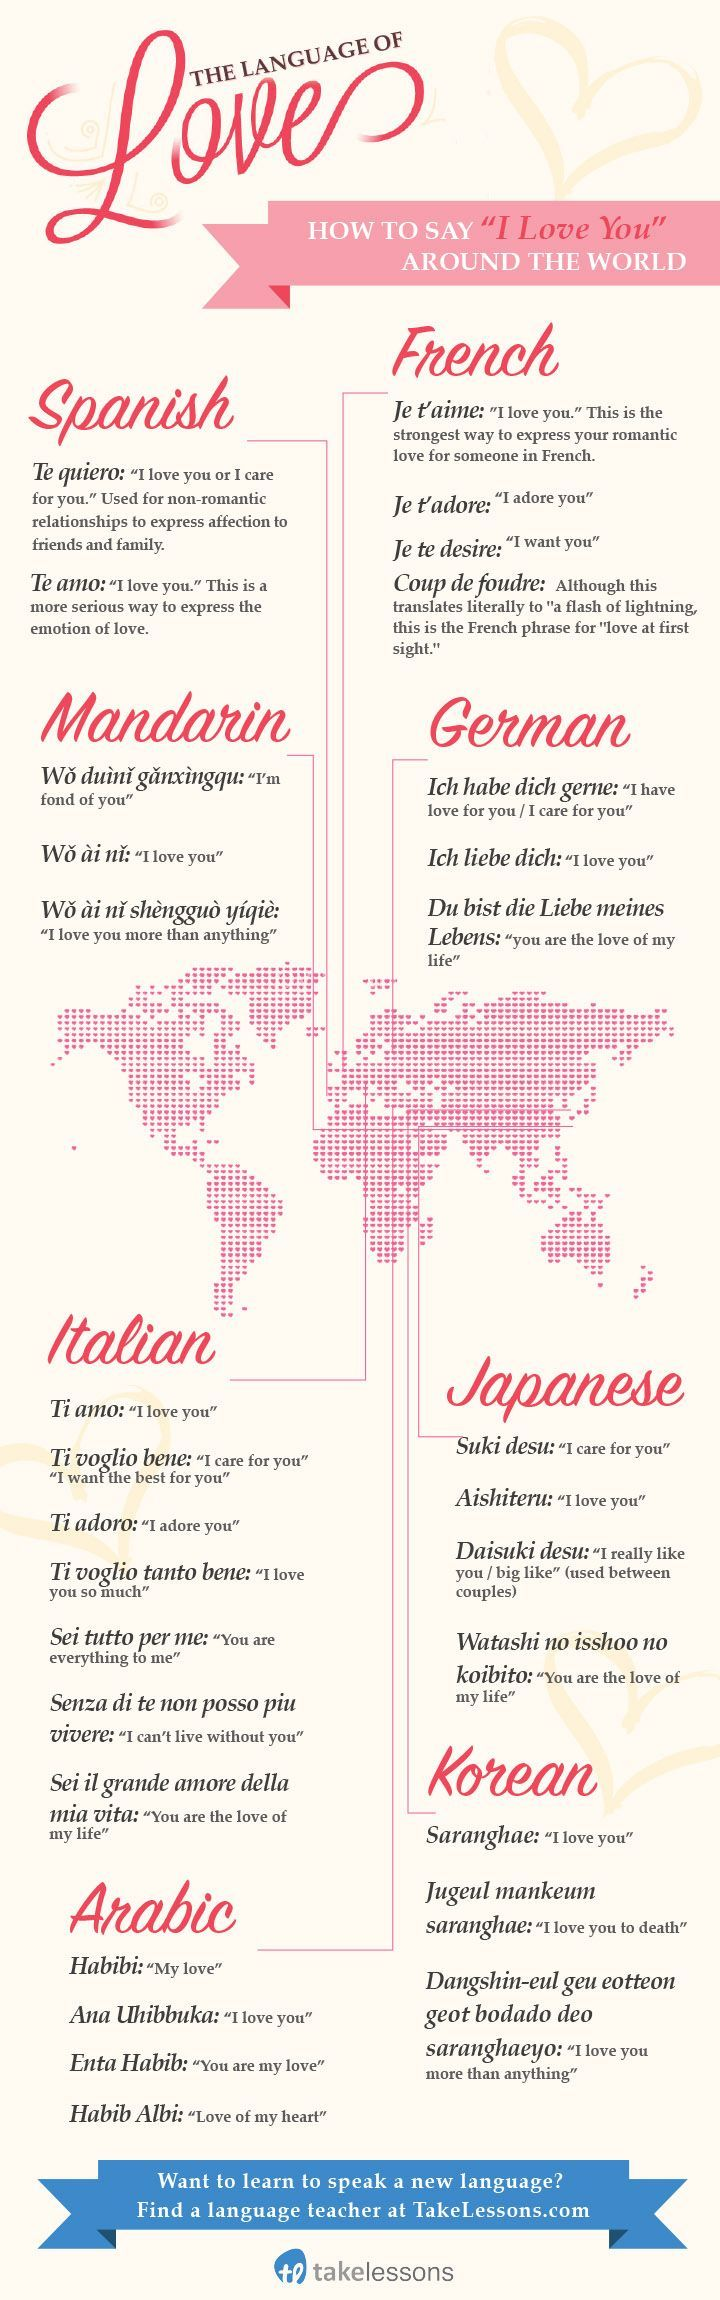 Educational Infographic The Language Of Love How To Say I Love You